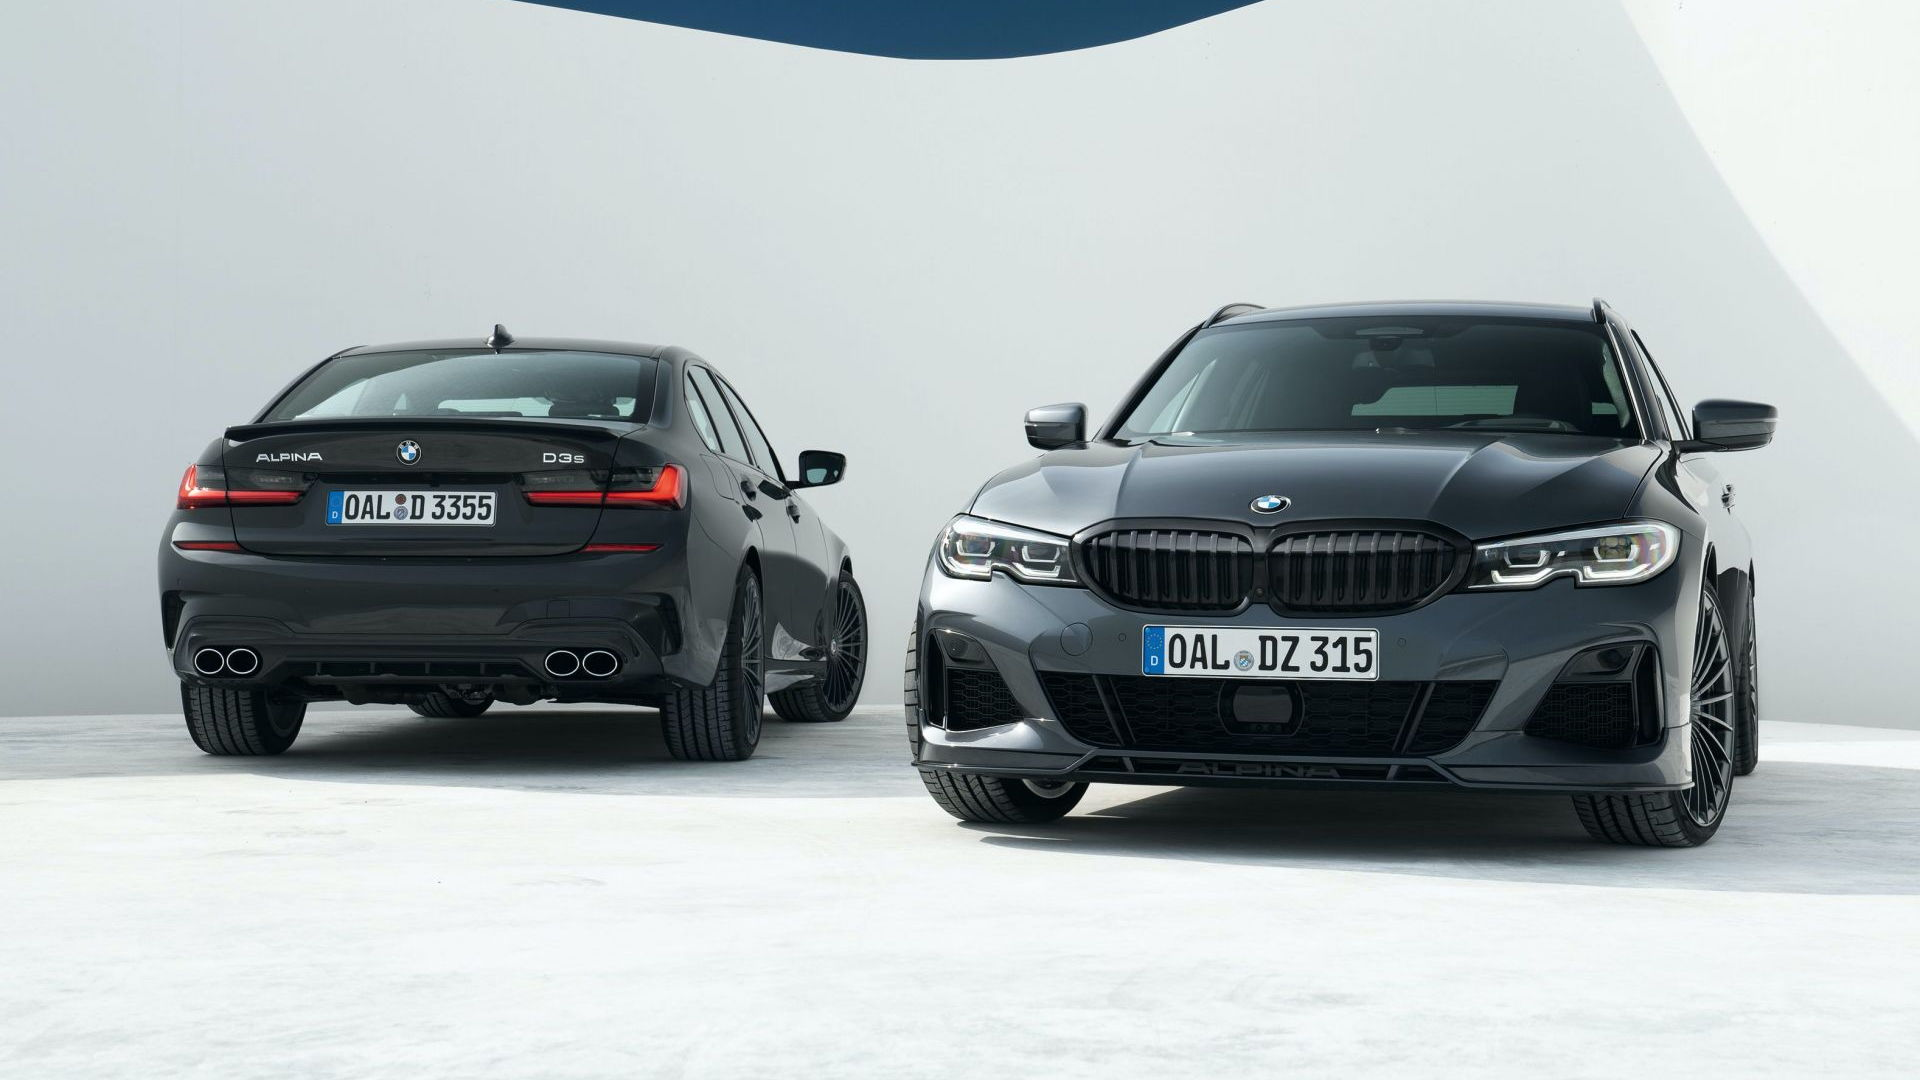 2020 BMW Alpina D3 S and D3 S Touring